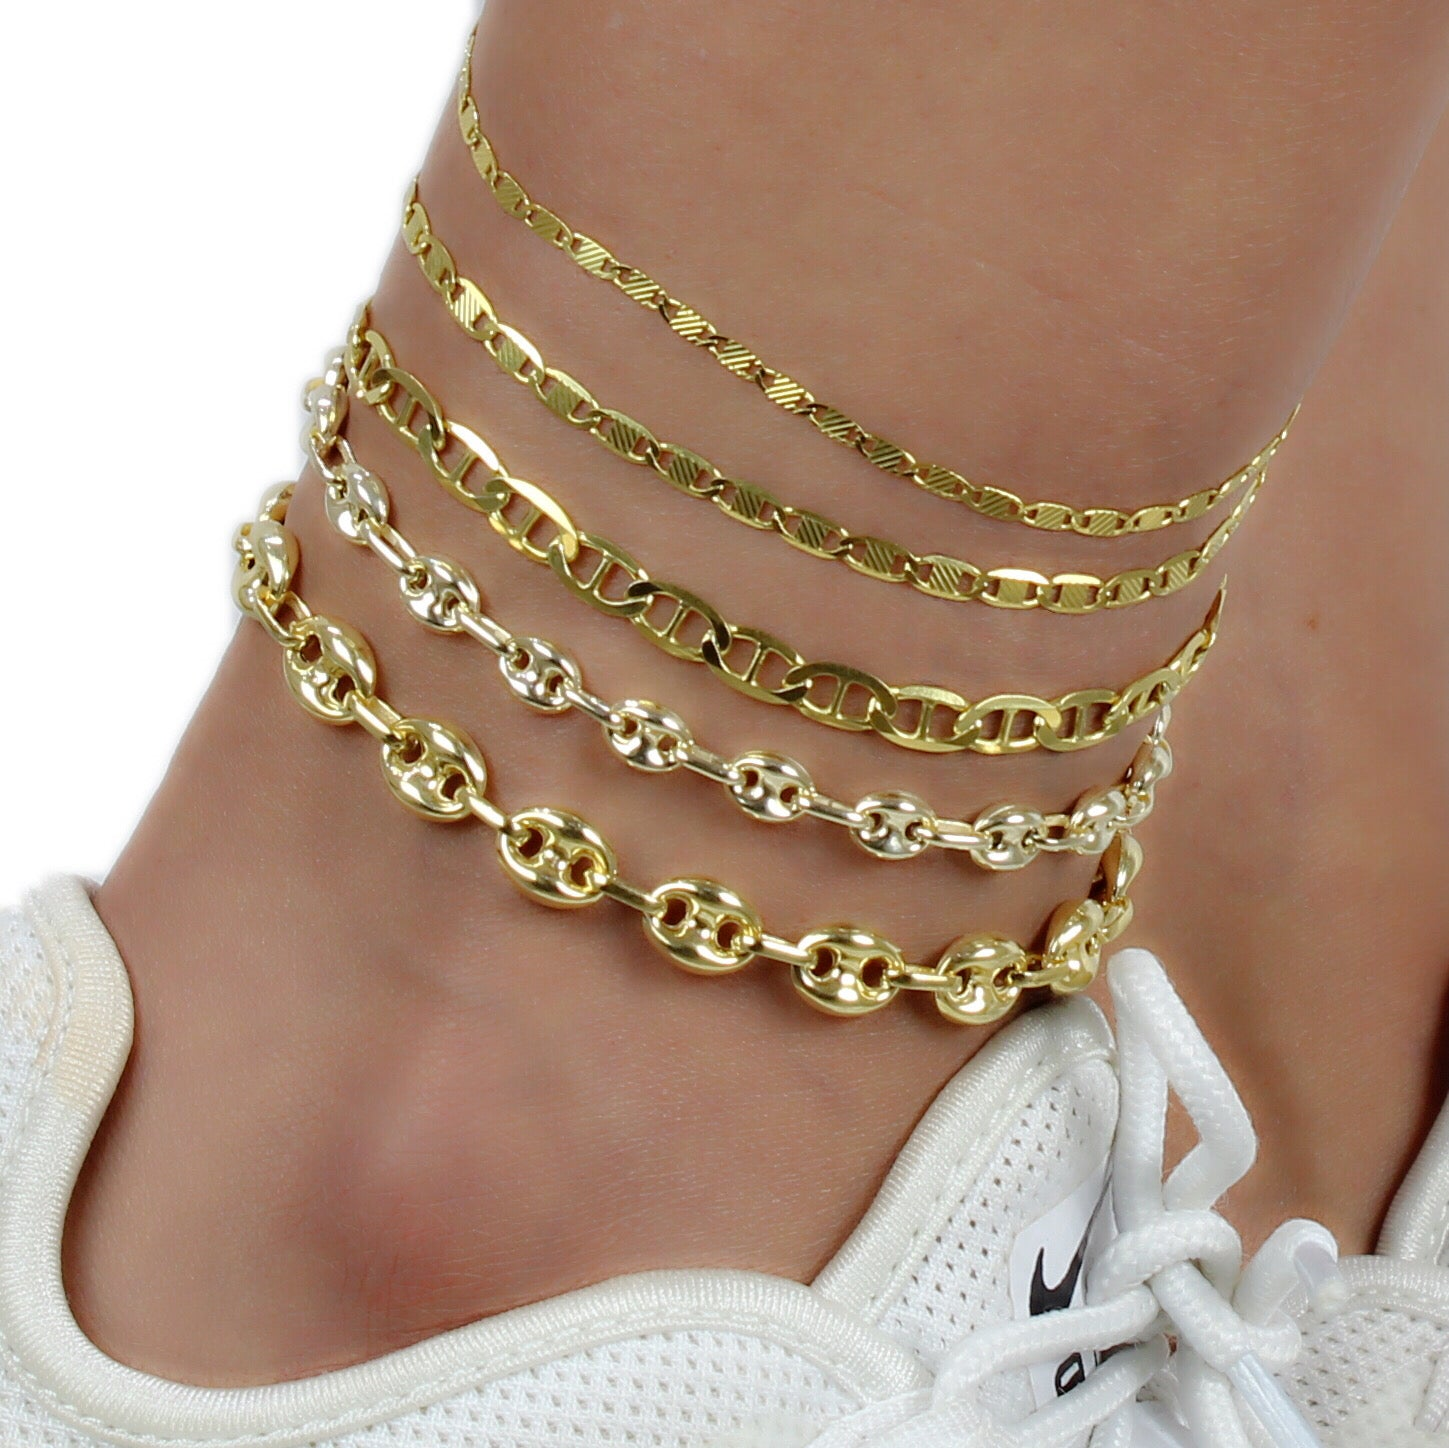 MARINER ANCHOR CHAIN ANKLET